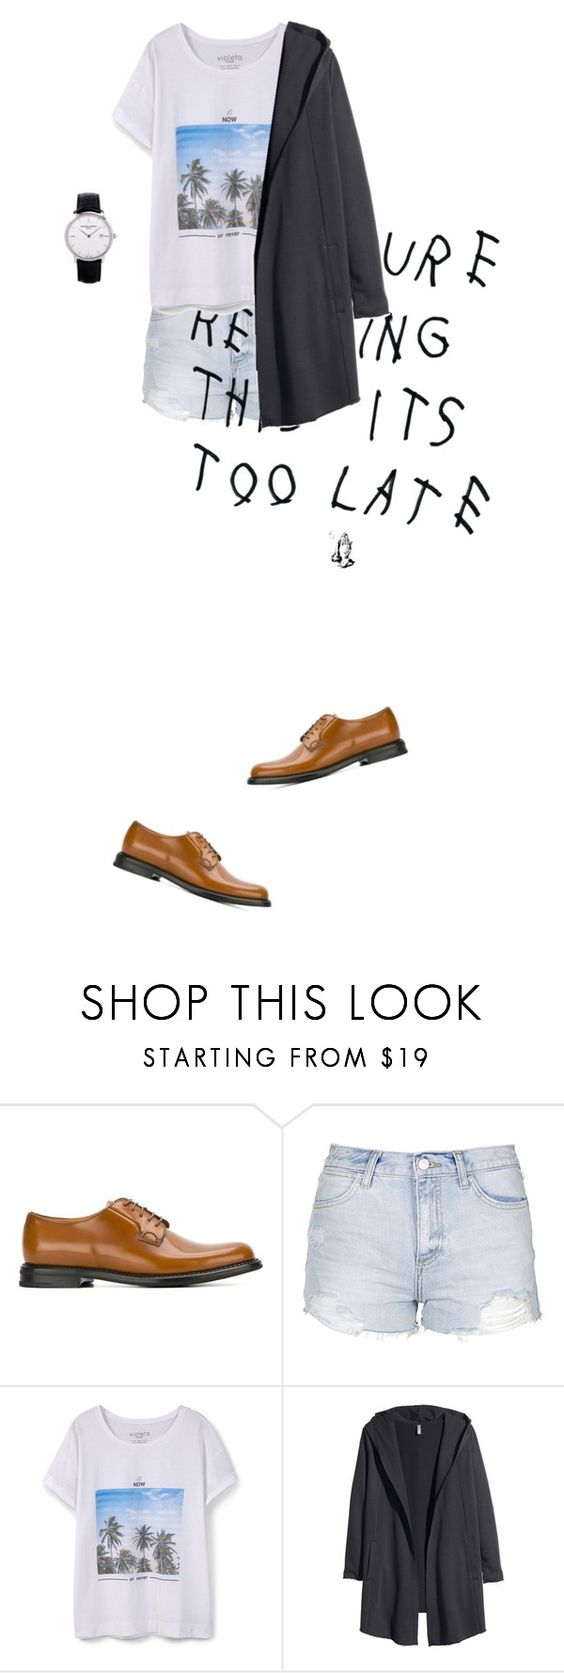 """""""150827"""" by nwpkwn ❤ liked on Polyvore featuring Church's, Topshop, Violeta by Mango, H&M and Frédérique Constant"""